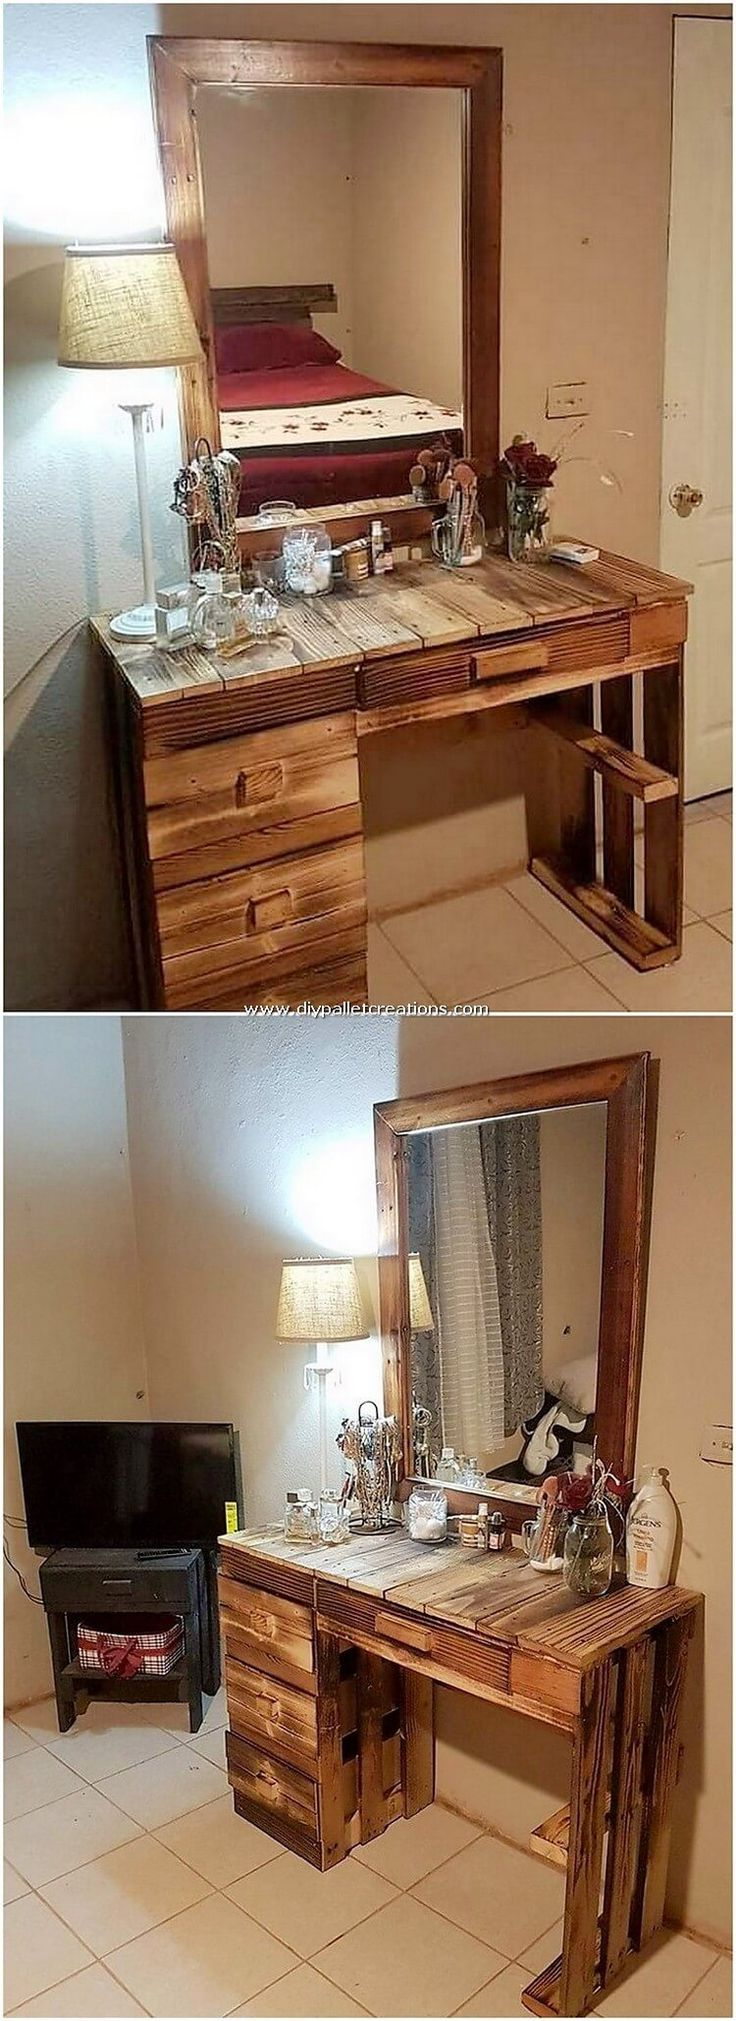 Innovative Projects You Can Make with Shipping Pallets ...